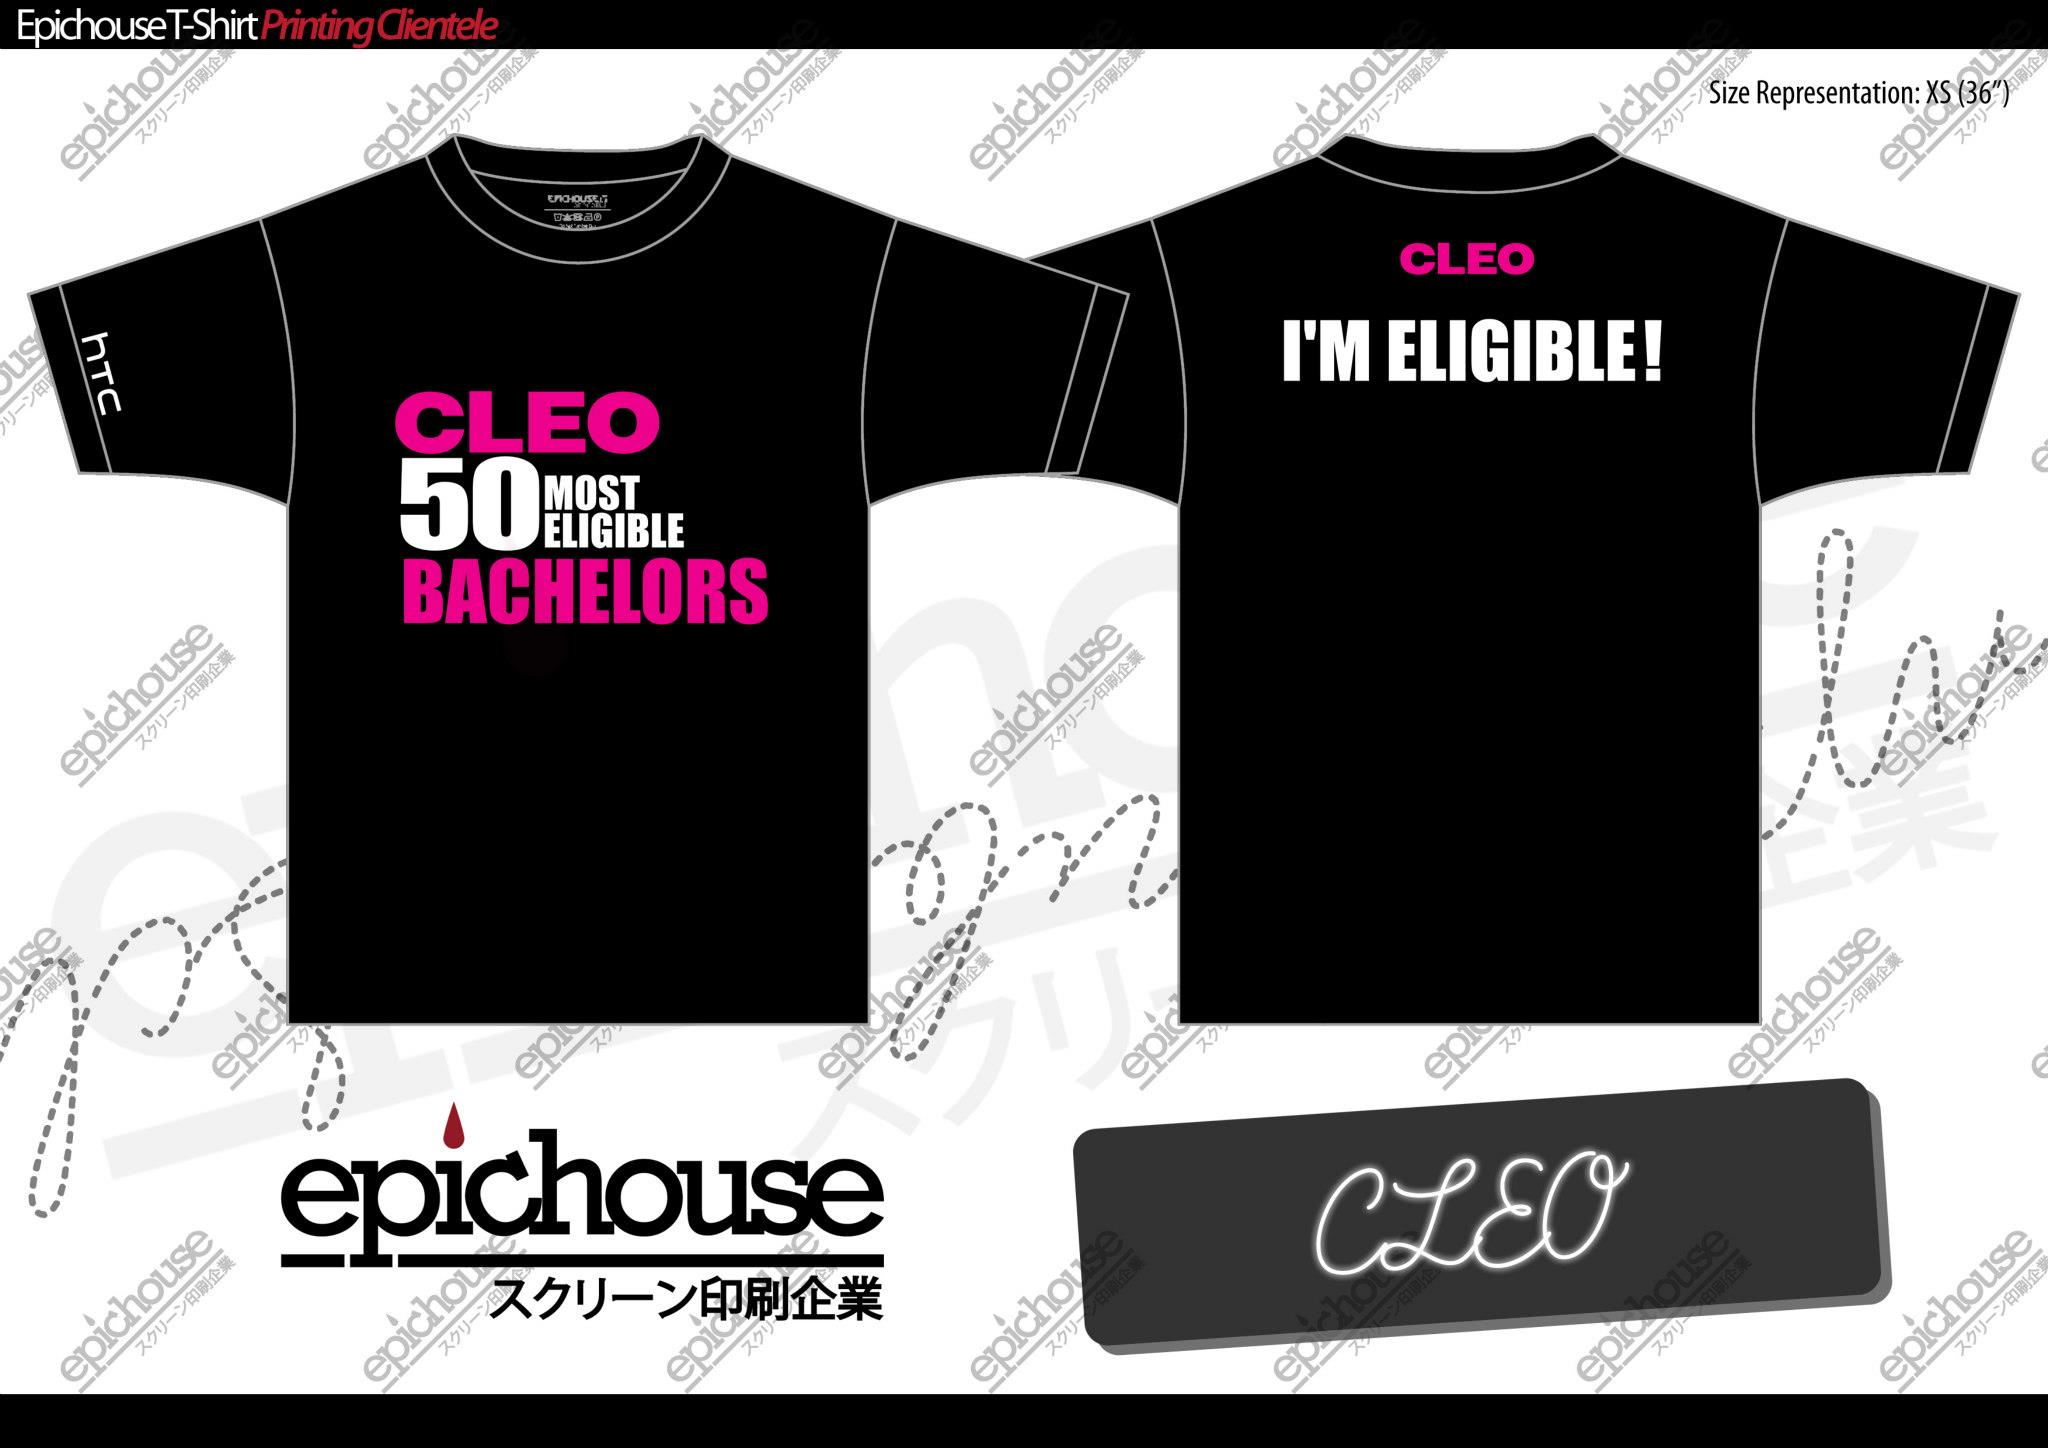 Cleo Magazine Bachelors Event T-Shirt